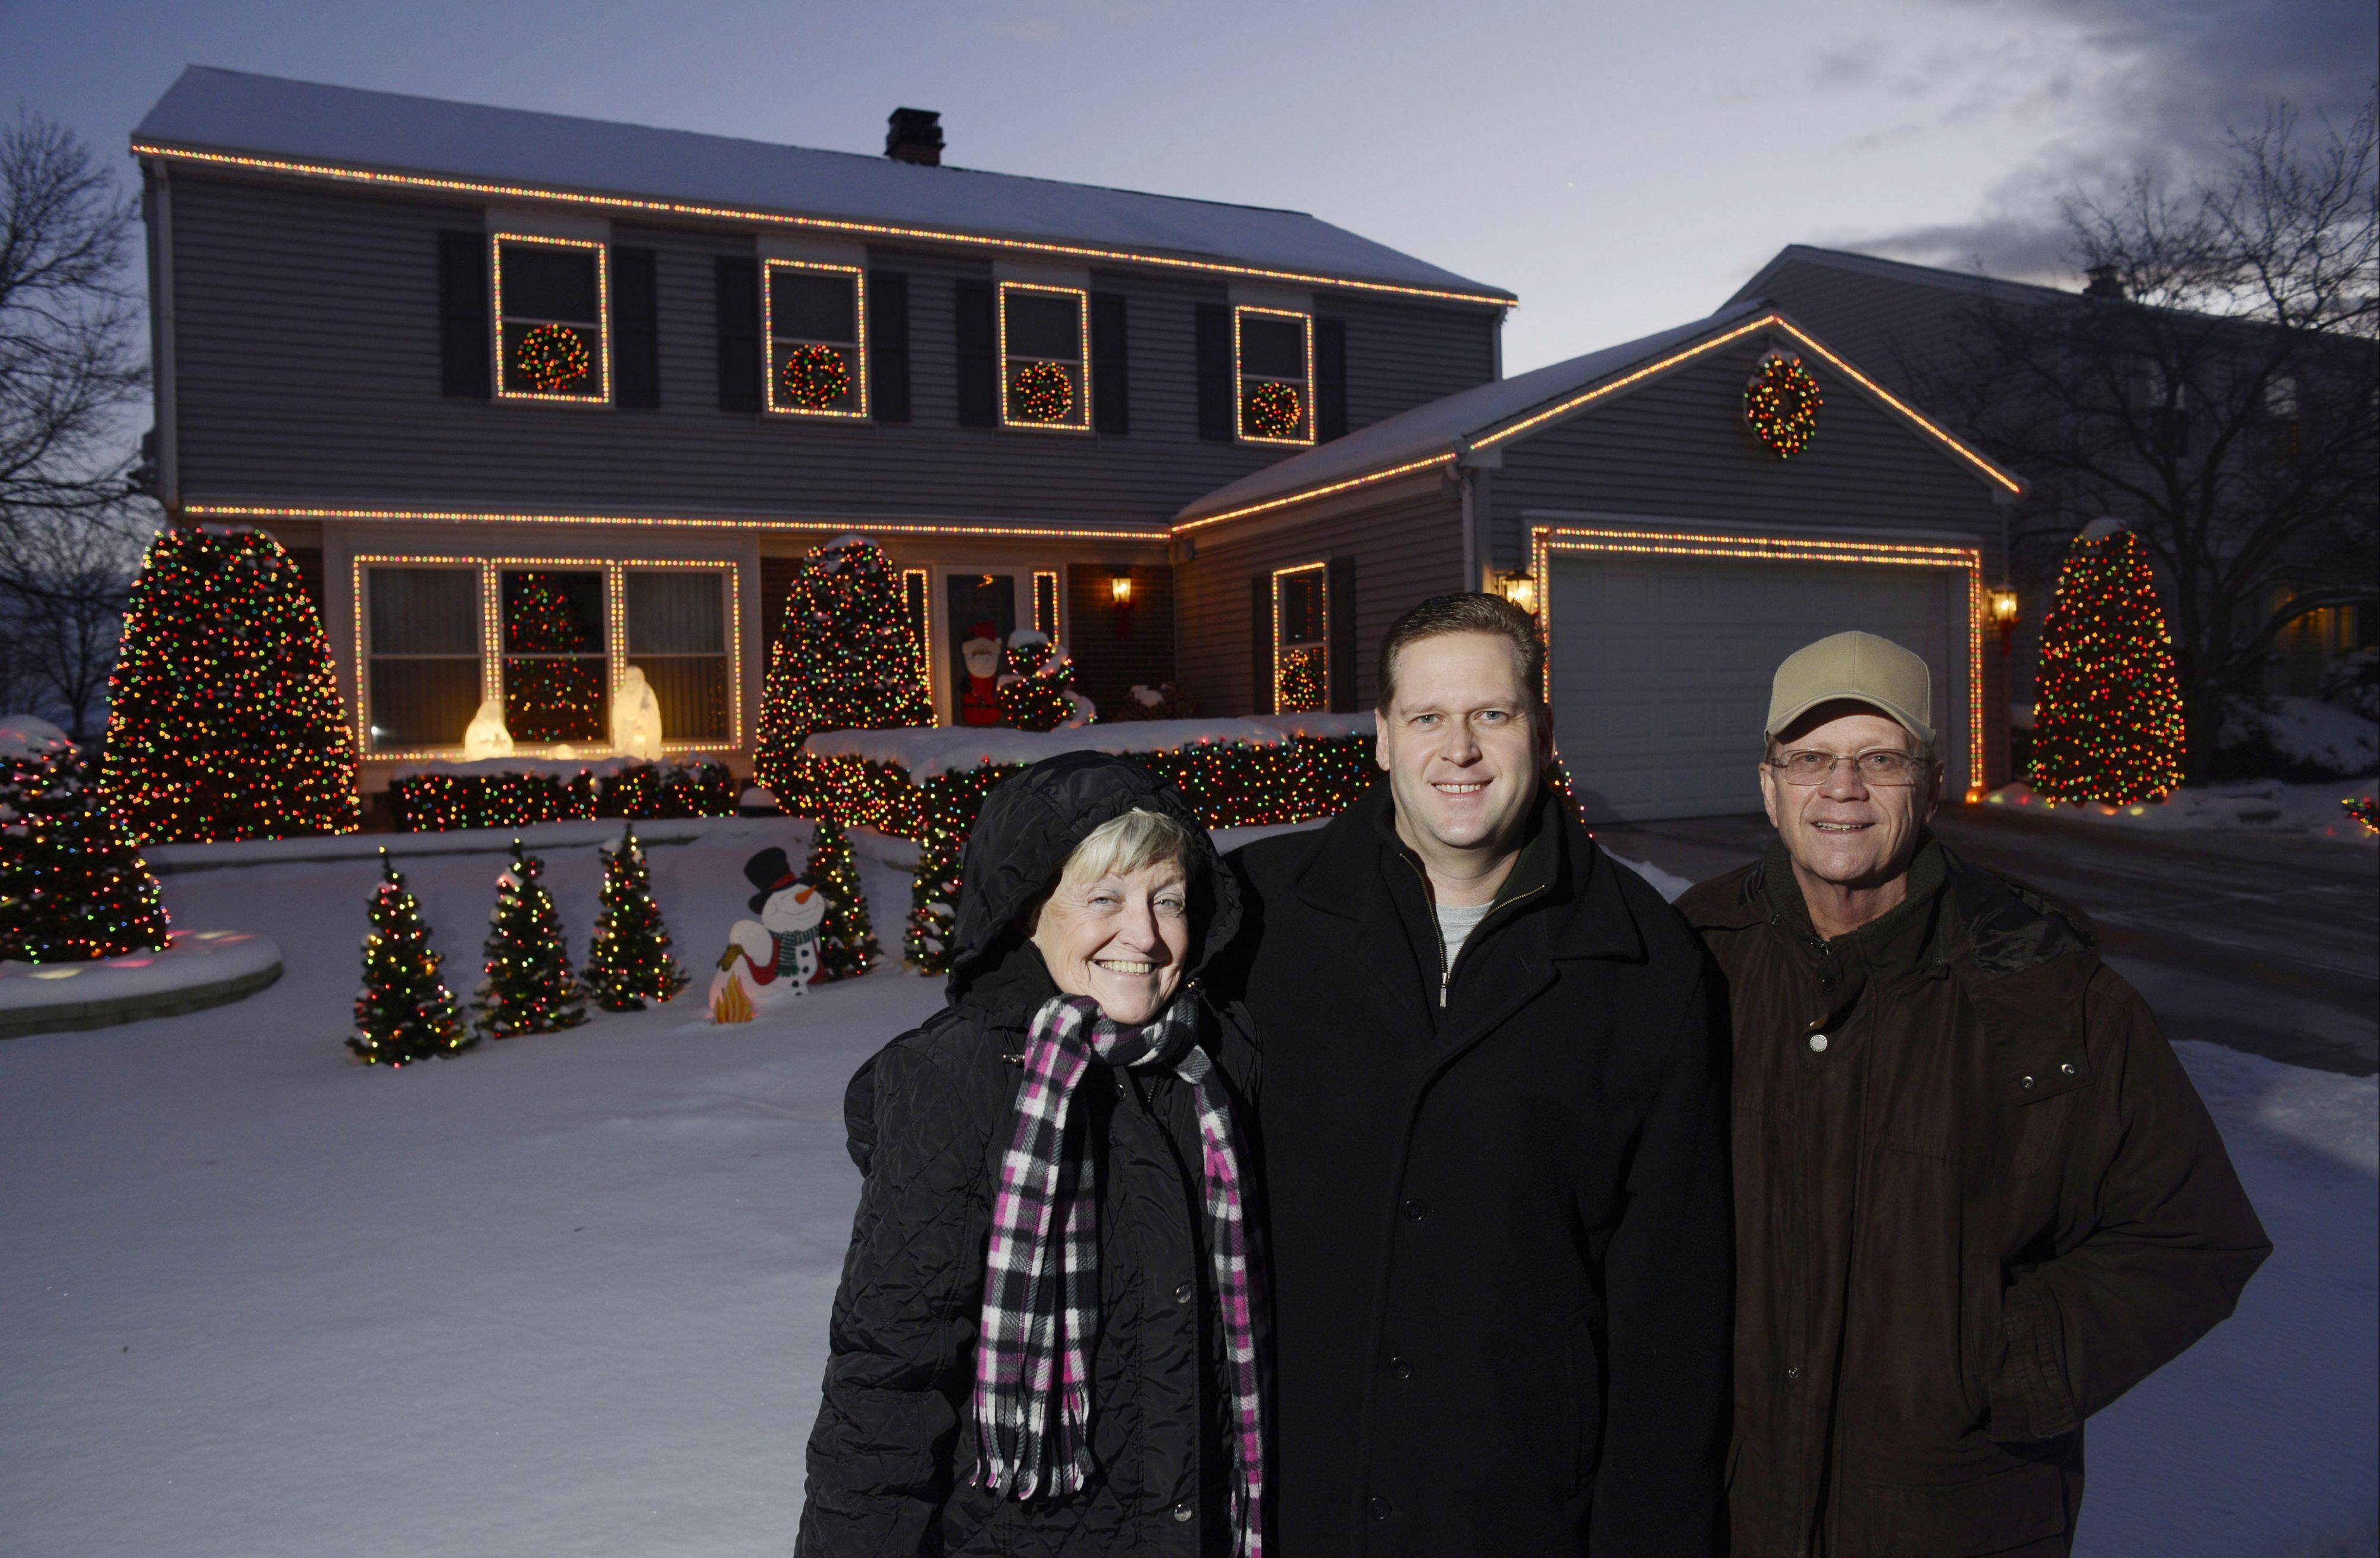 Todd Mickley stands with his parents, Donna and Hank, in front of their Schaumburg home, which has been decorated with 18,000 holiday lights, at 2049 Tiffany Drive. The Mickleys won the Editor�s Choice award for the Northwest suburbs in the Daily Herald�s holiday lights contest.